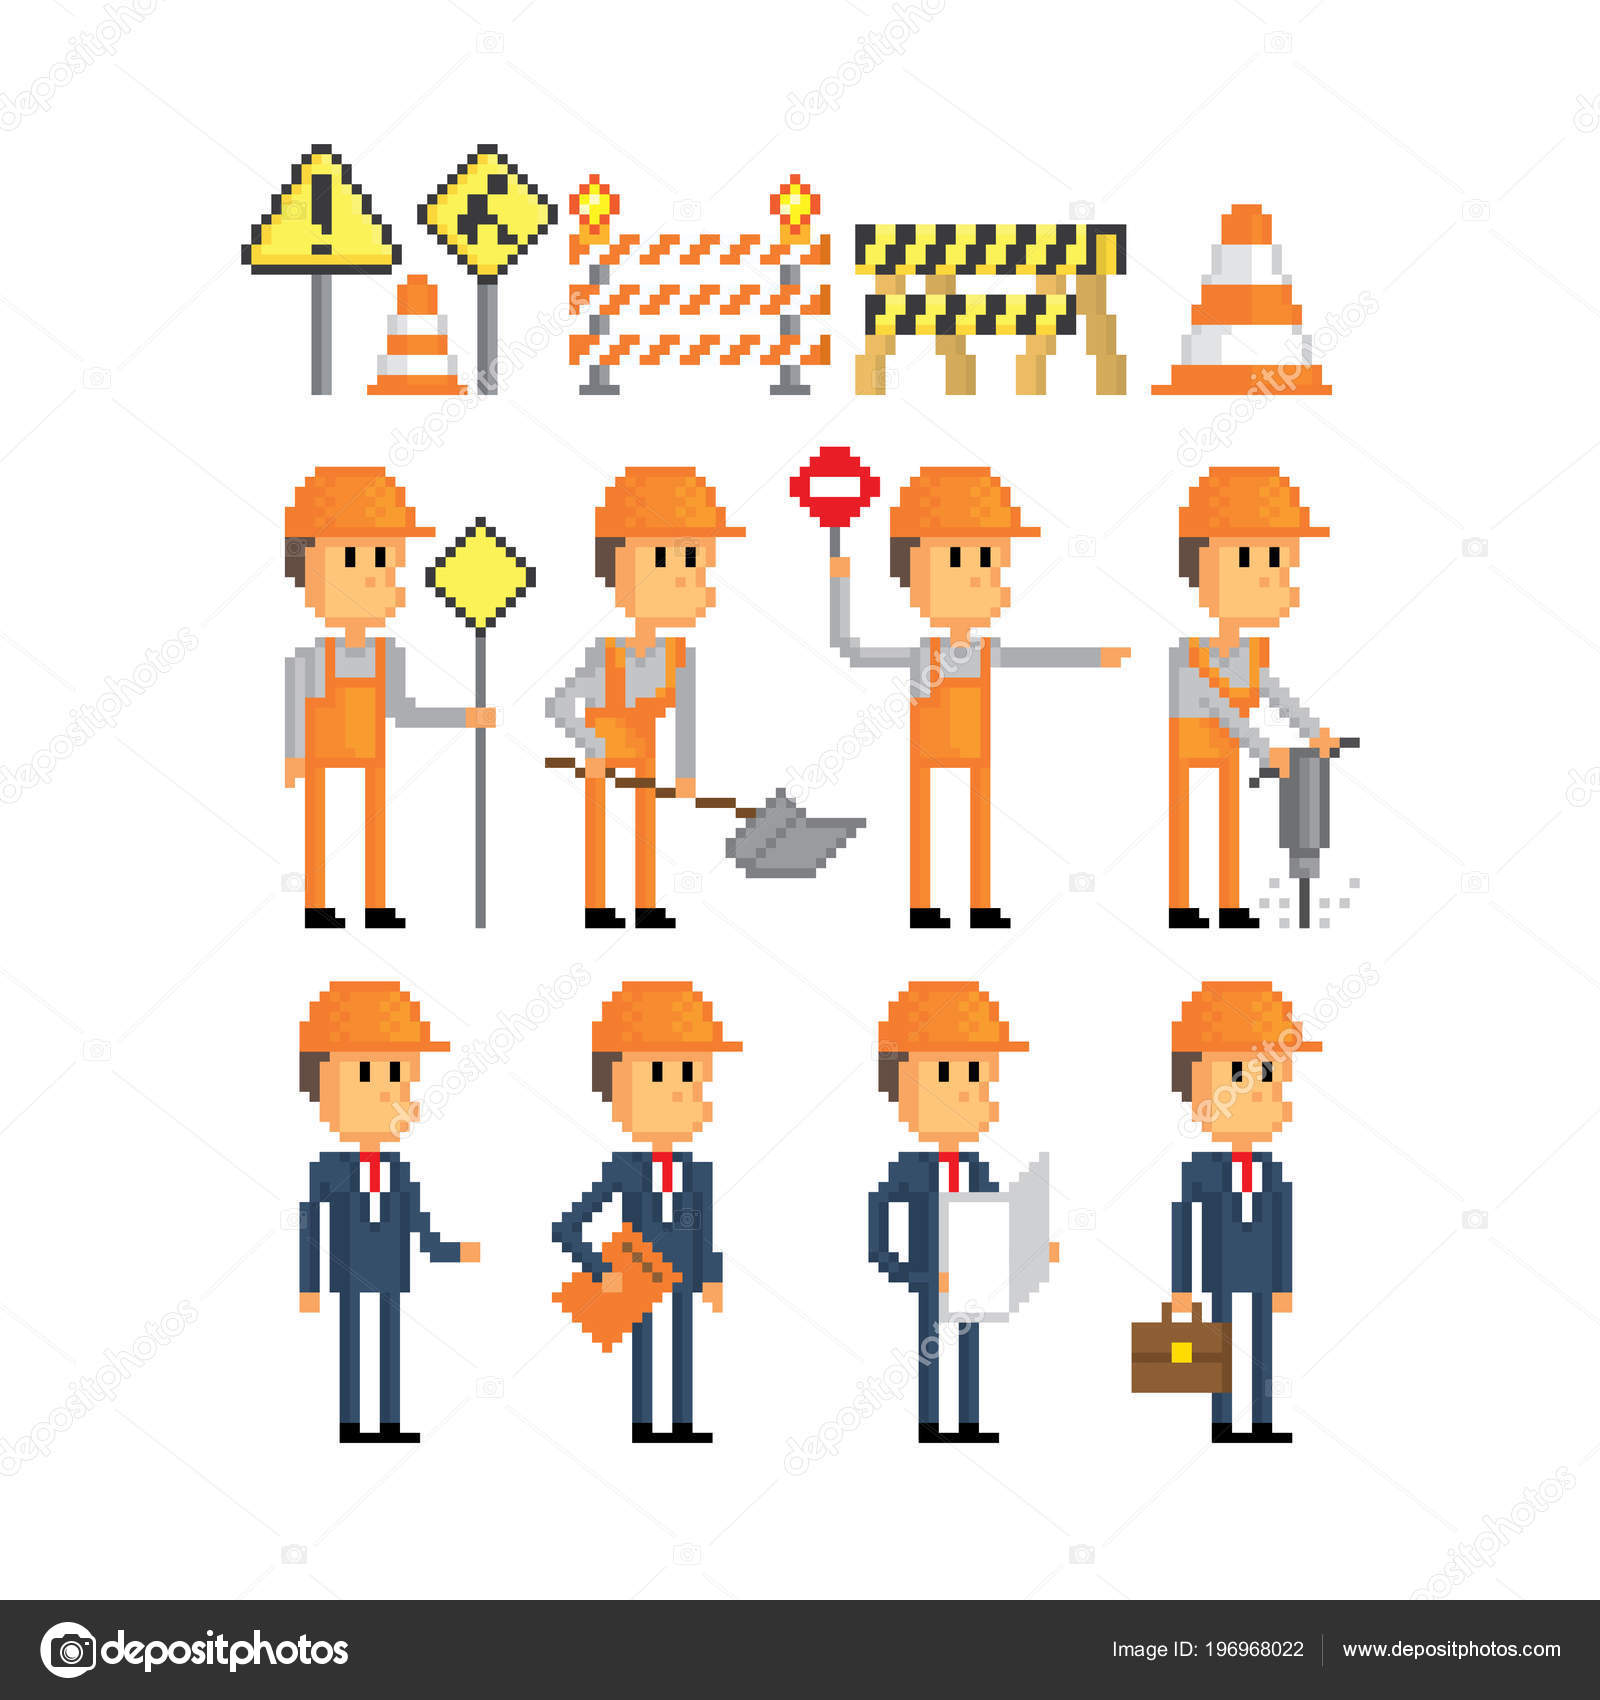 Road works icon set  Pixel art  Old school computer graphic